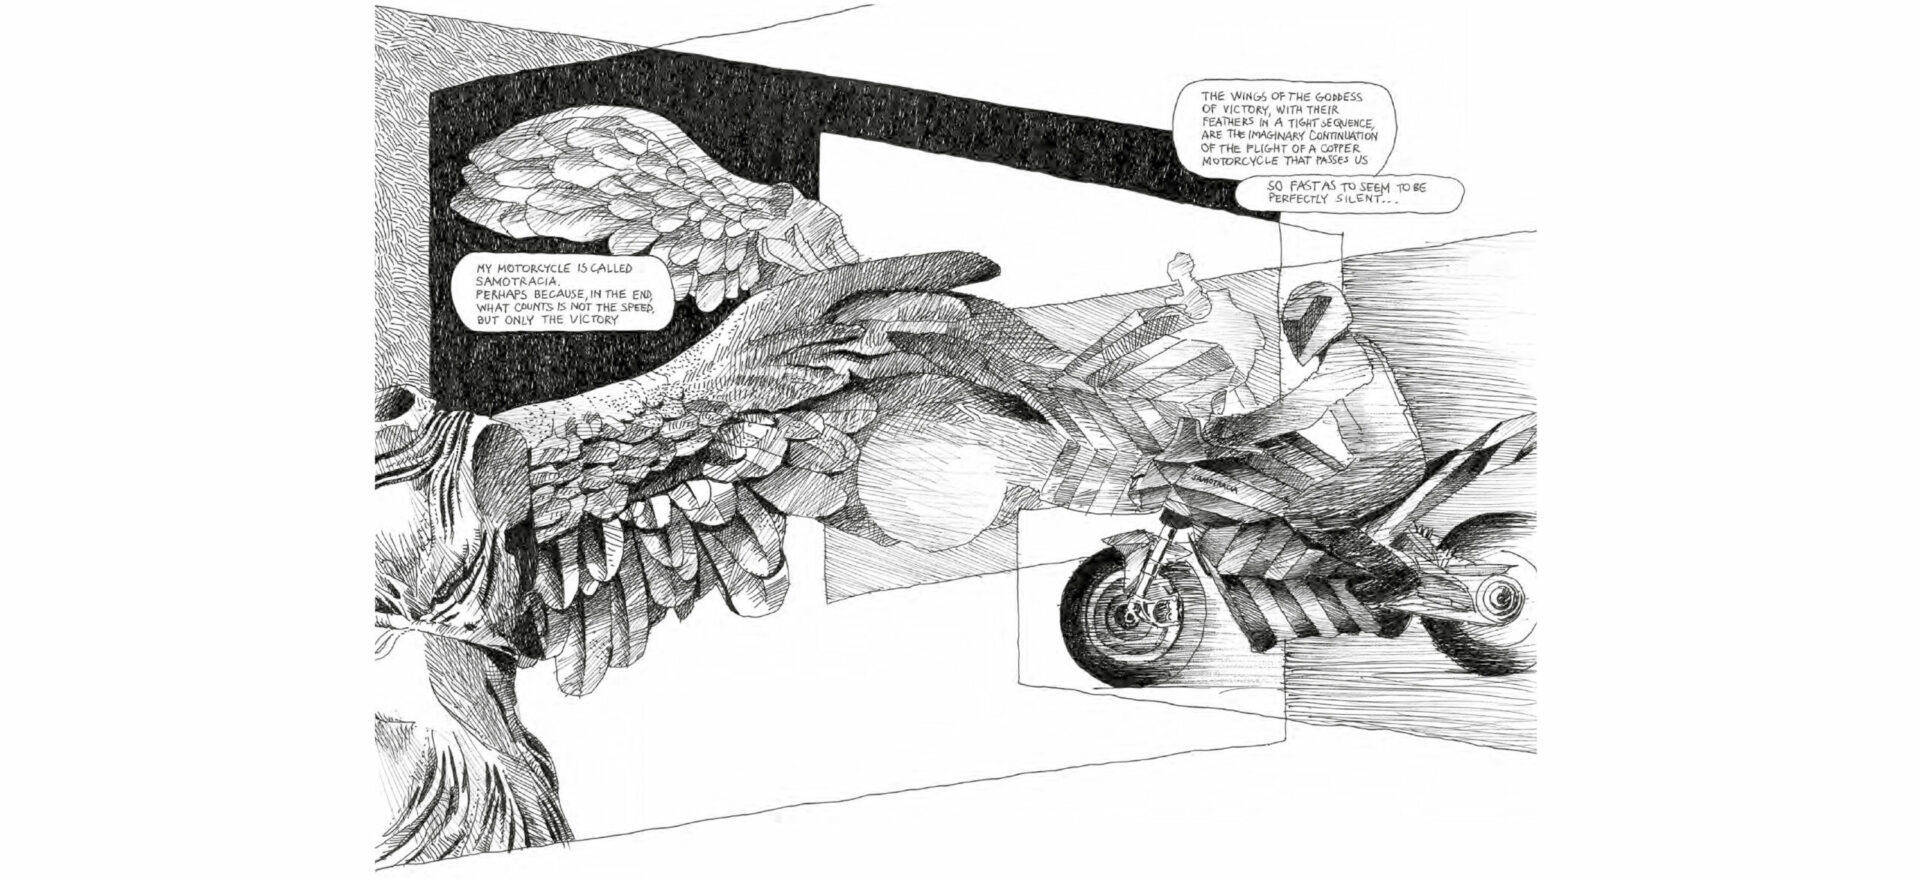 Samotraccia copper motorbike Art Drawing by Mario Trimarchi for De Castelli with black ink on white paper showing a Manga style on the inspiration of the design.